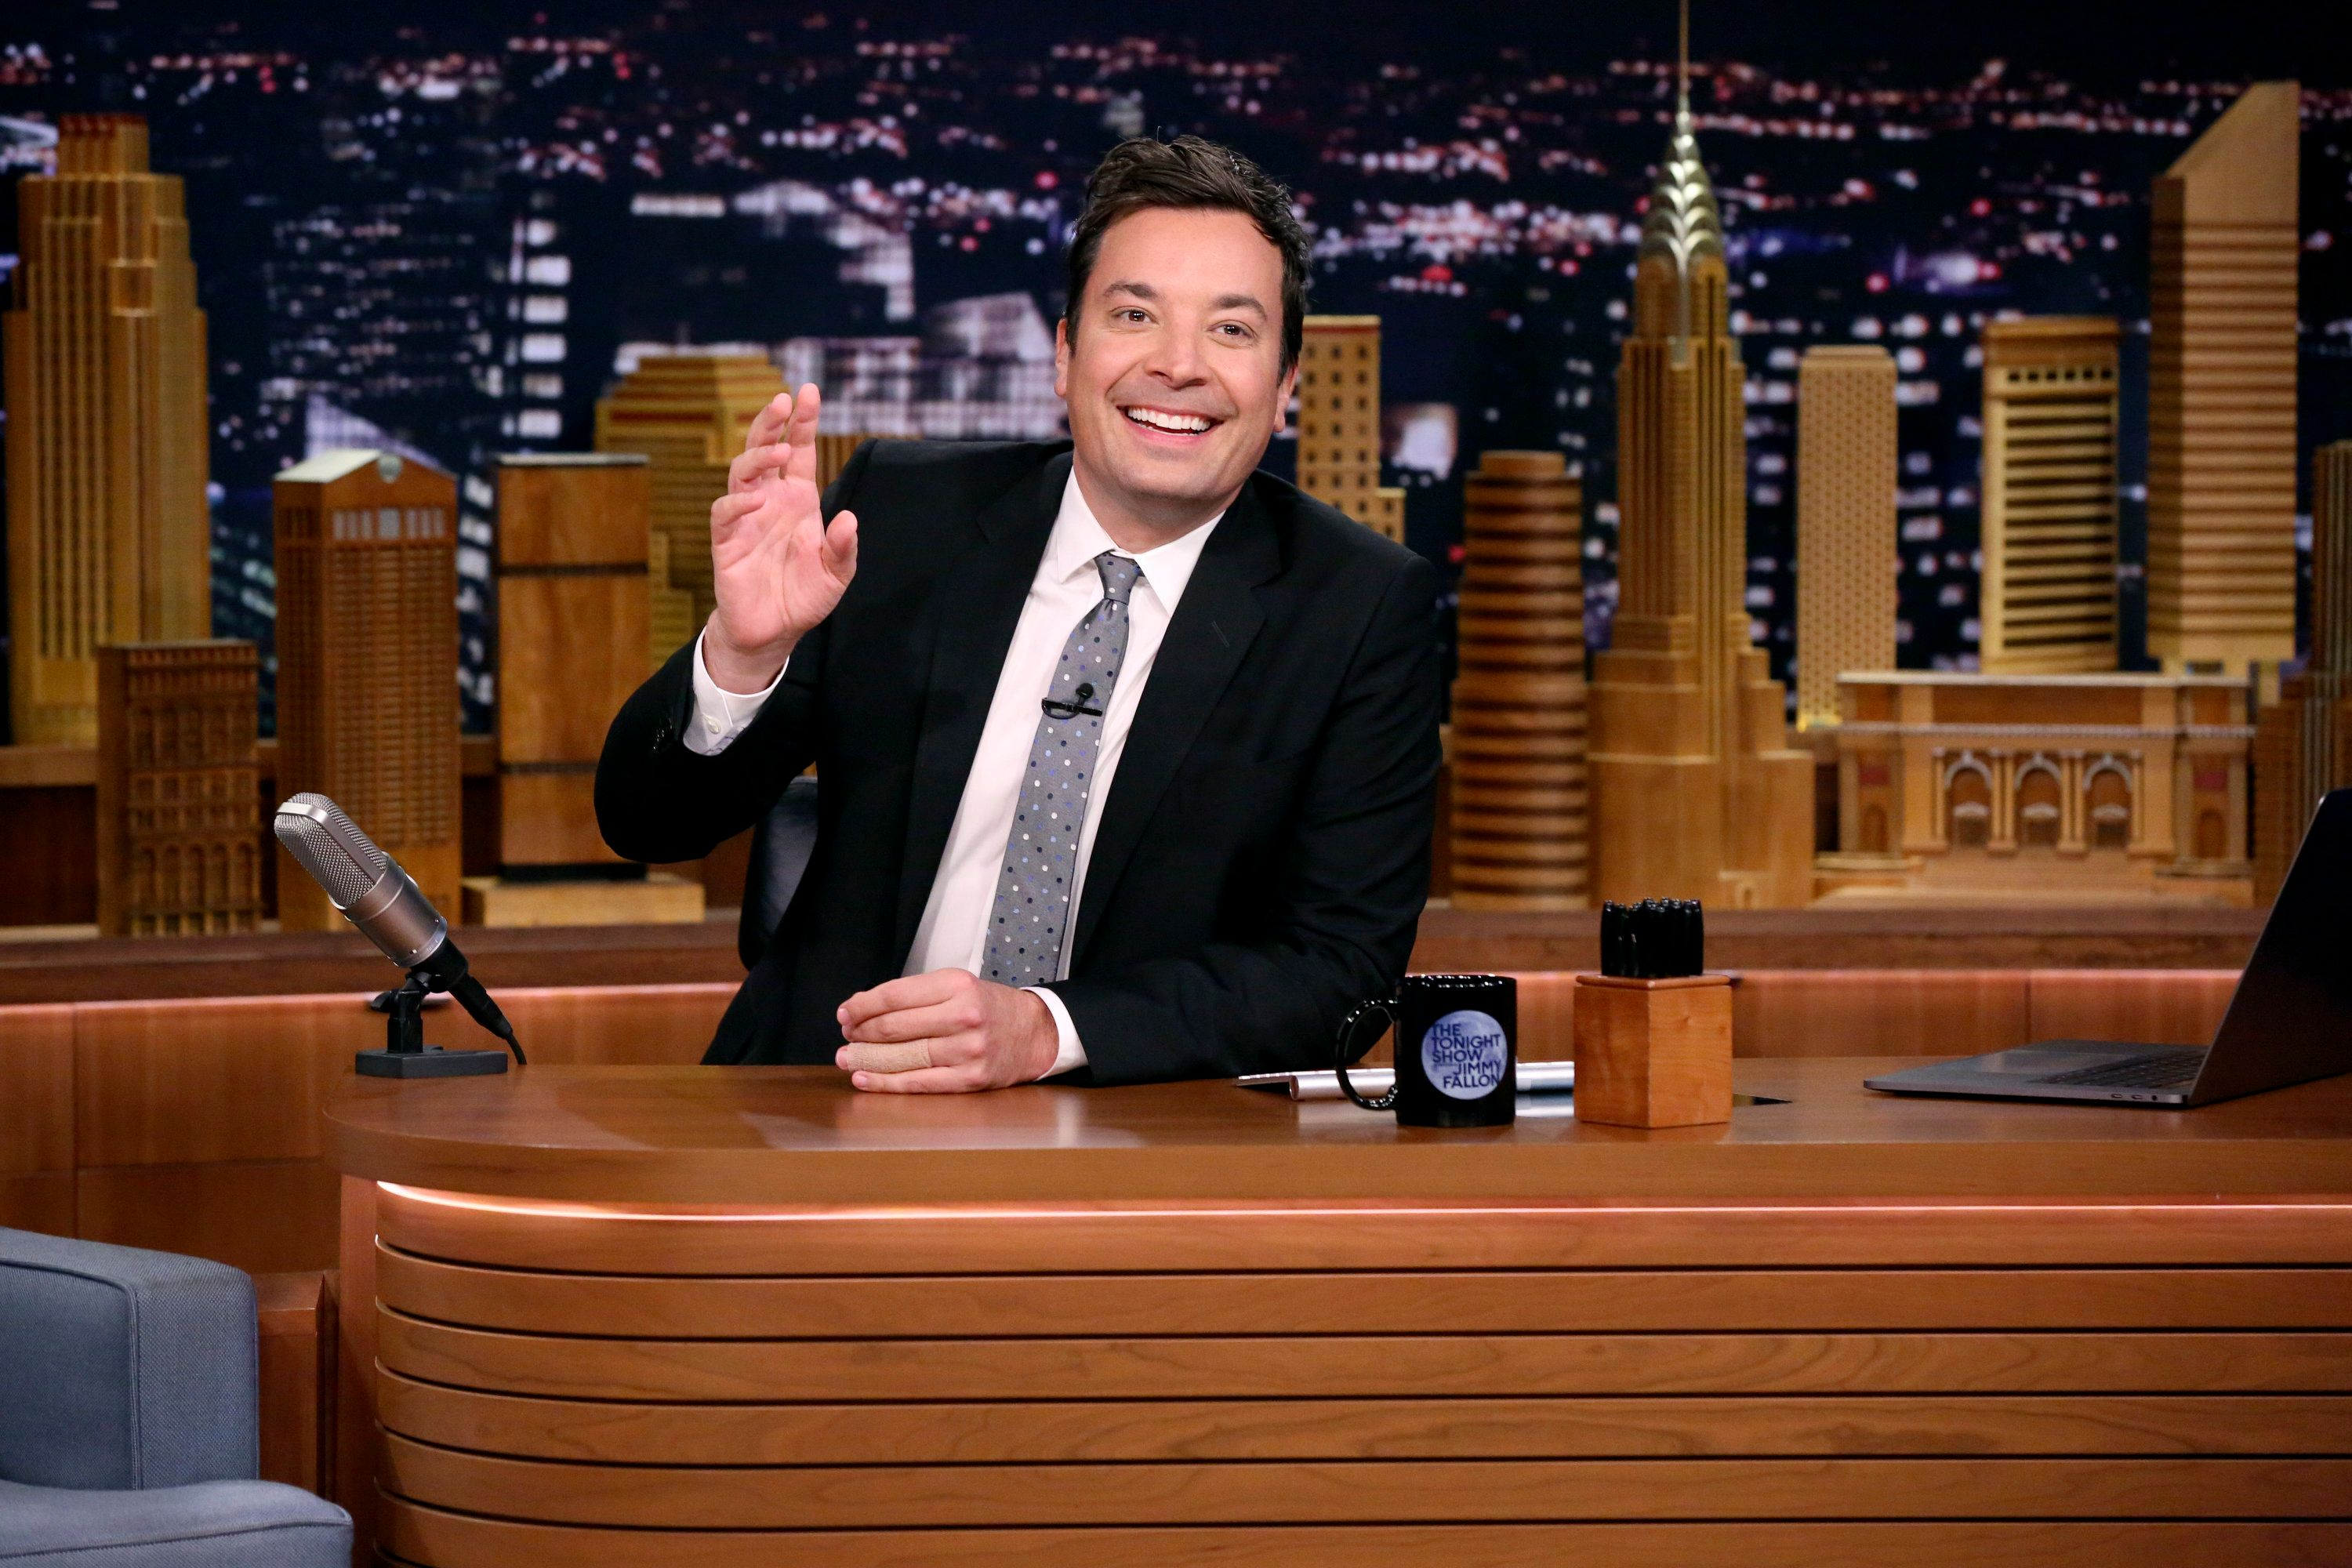 Jimmy Fallon's mother Gloria dead at 68